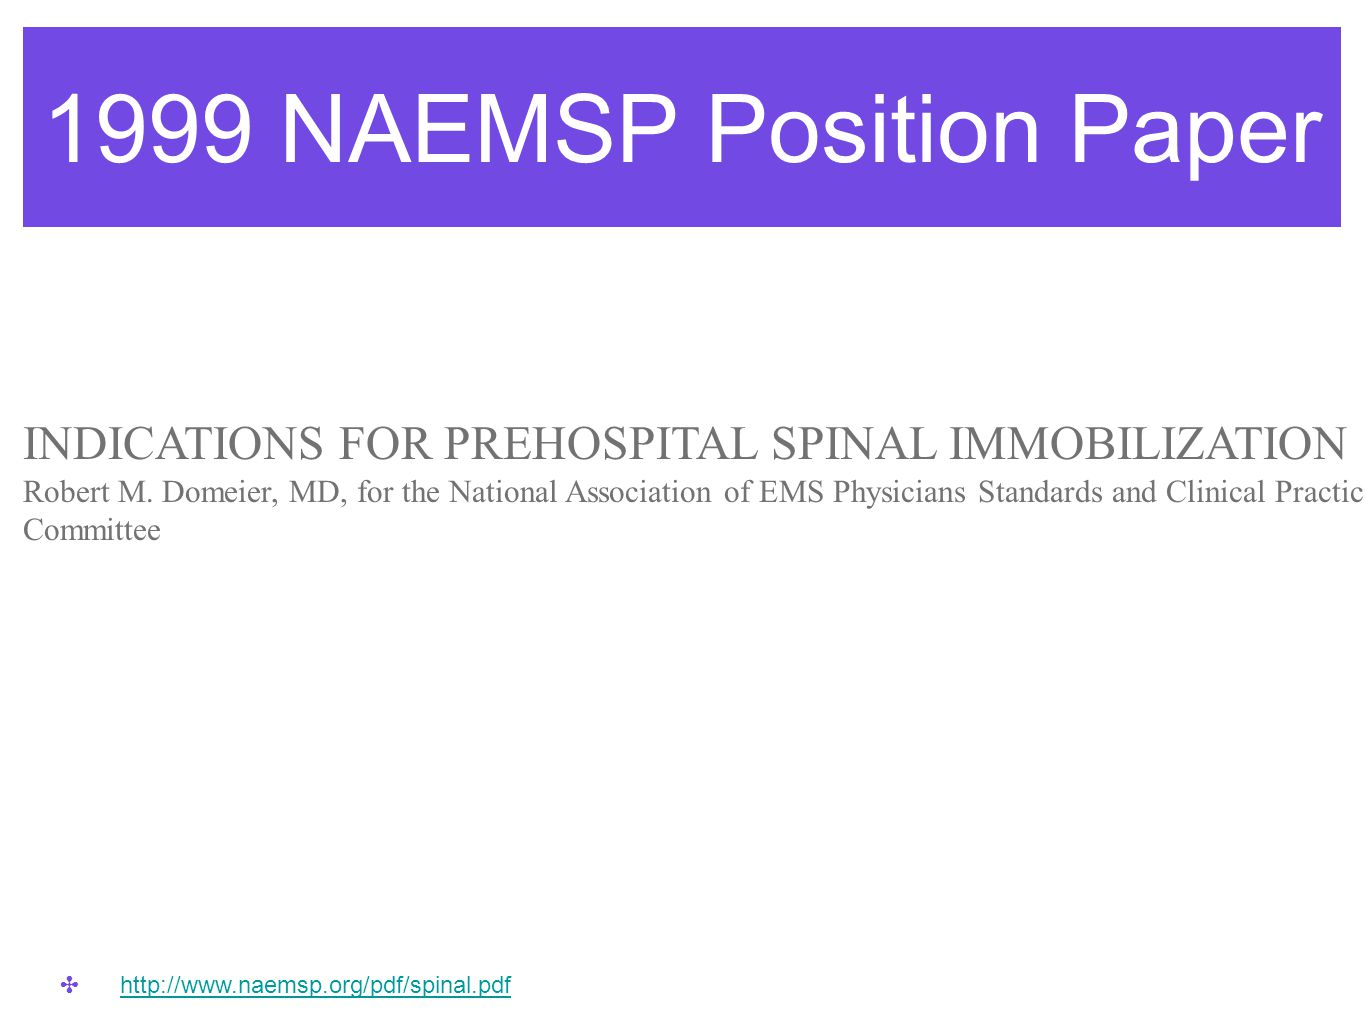 1999 NAEMSP Position Paper INDICATIONS FOR PREHOSPITAL SPINAL IMMOBILIZATION.